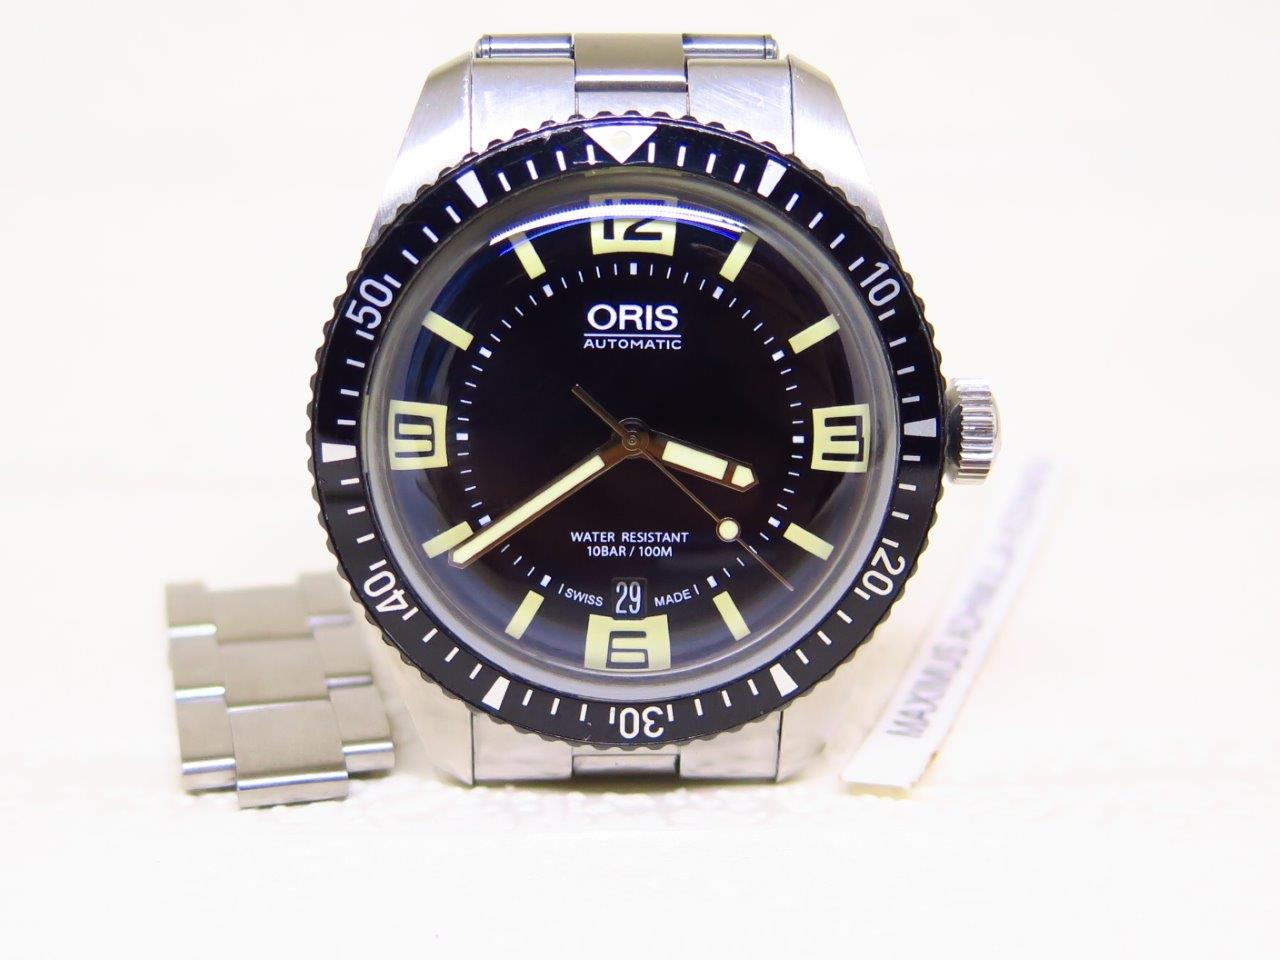 ORIS DIVER SIXTY FIVE HERITAGE with BRACELET - AUTOMATIC